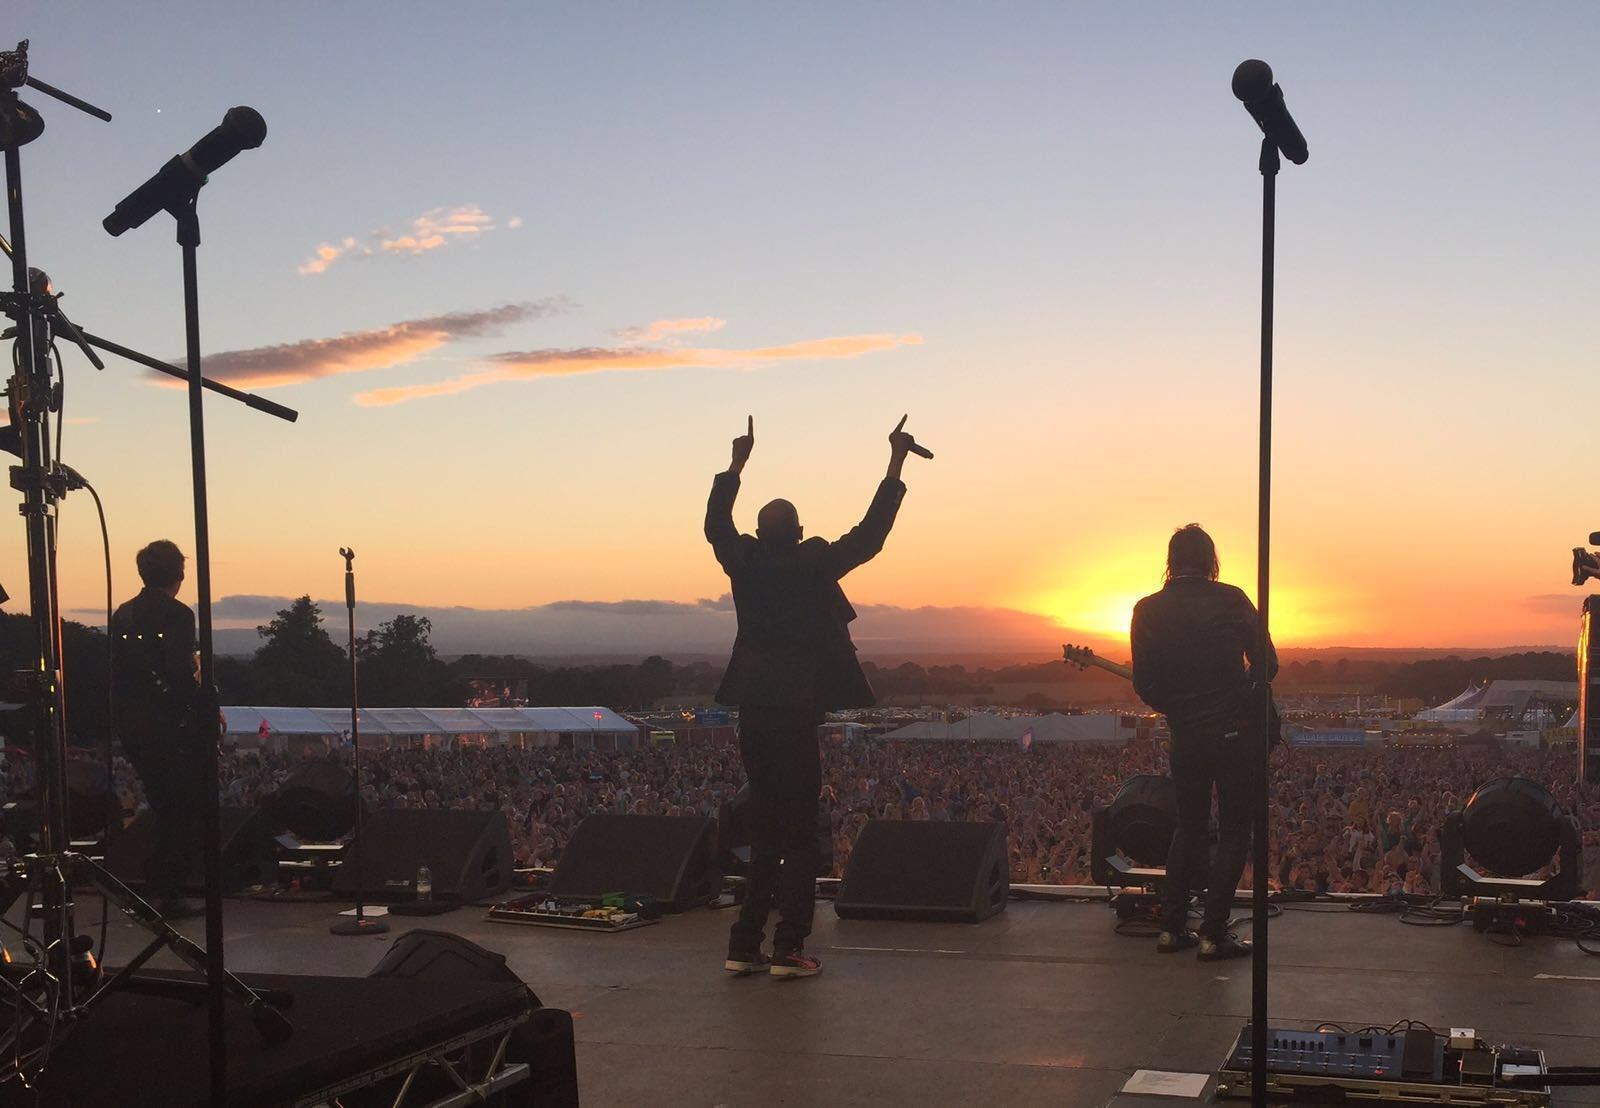 """Faithless last night at CarFest North. A magical moment, all the stars aligned, Maxi Jazz """"This is my church."""" https://t.co/S09jgTs8On"""